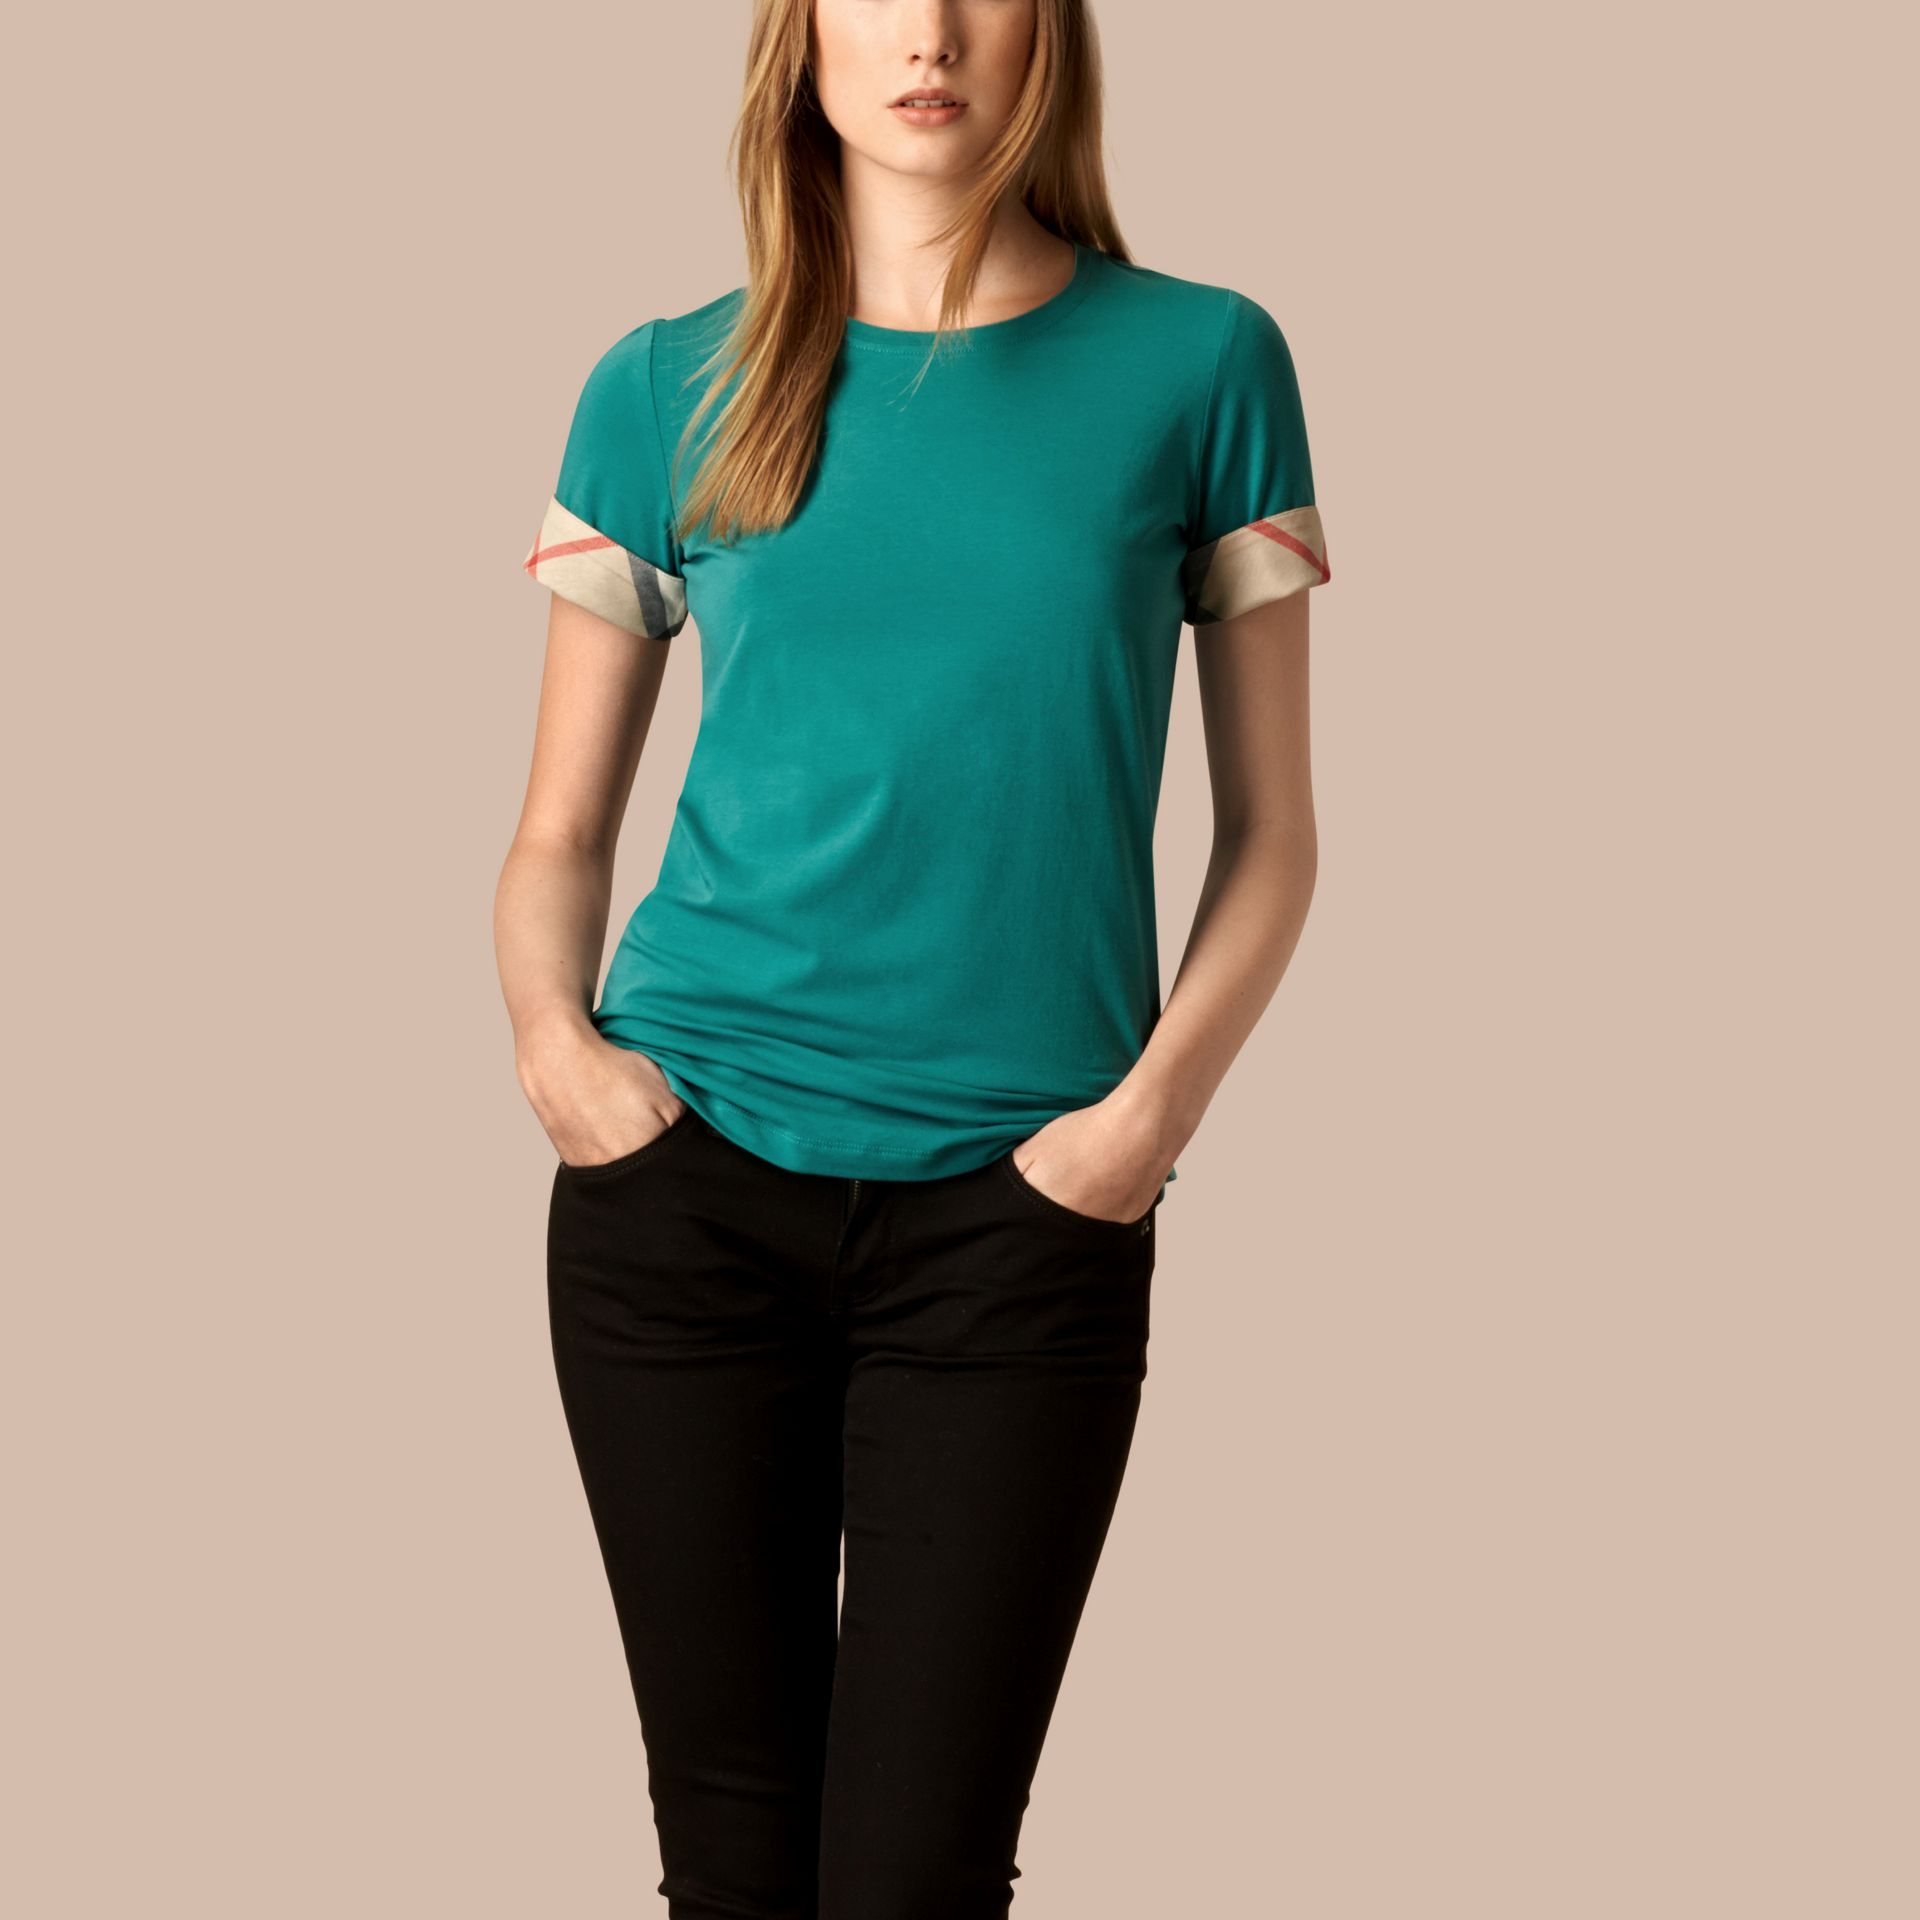 Aqua green Check Cuff Stretch Cotton T-Shirt Aqua Green - gallery image 1